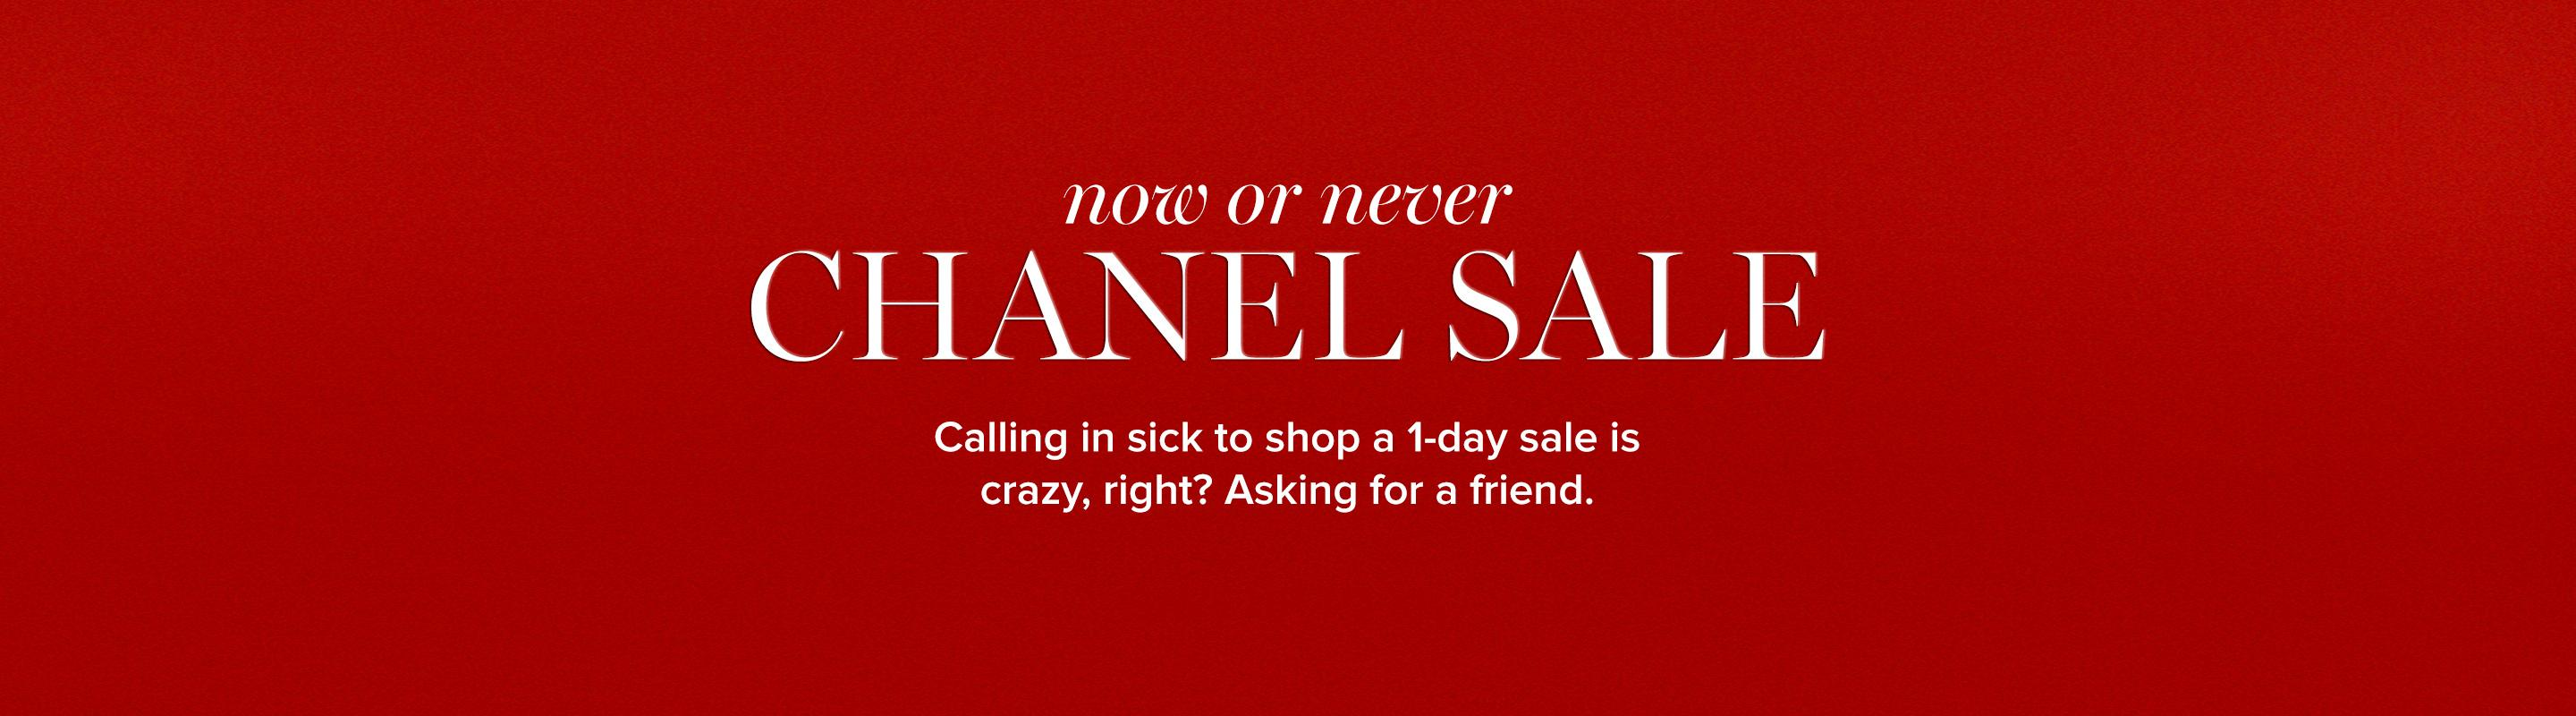 Now Or Never: Chanel Sale